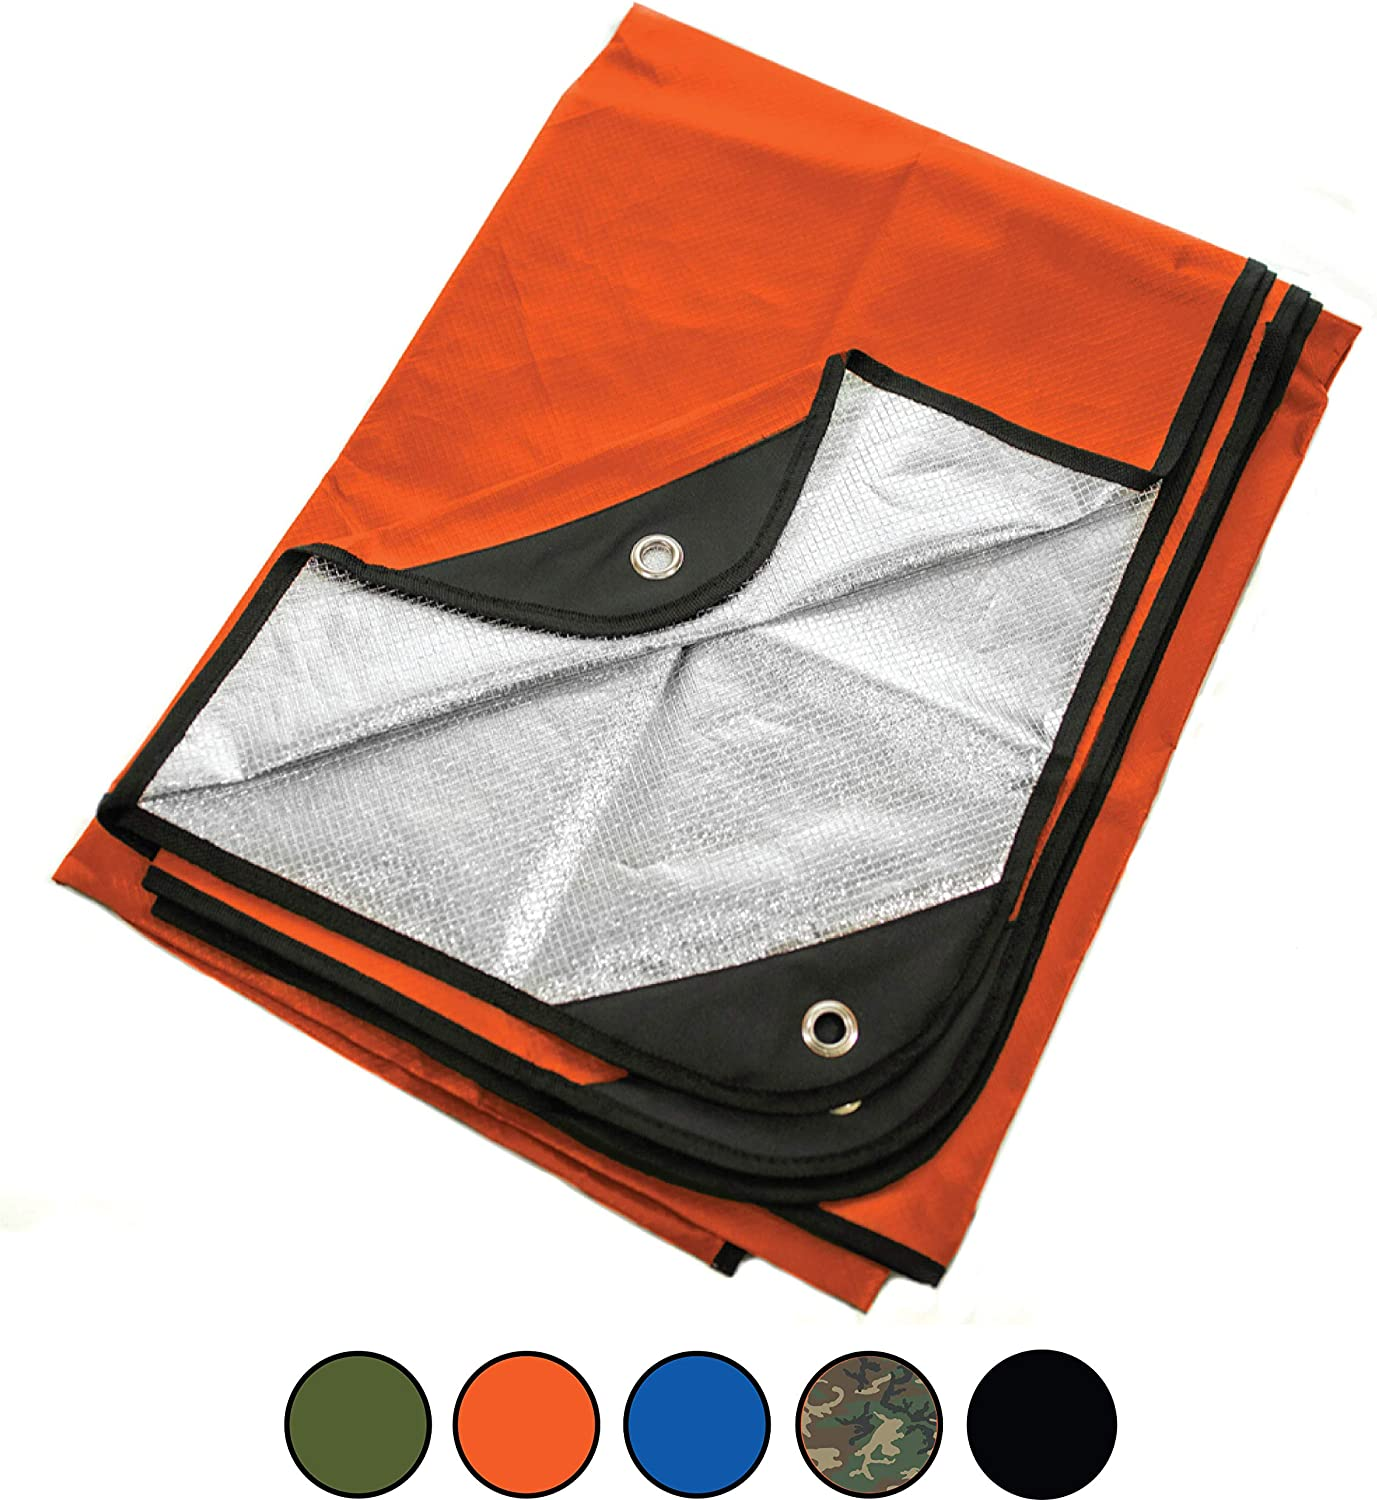 Arcturus All Weather Outdoor Survival Blanket All Purpose,Thermal,Reflective,Emergency